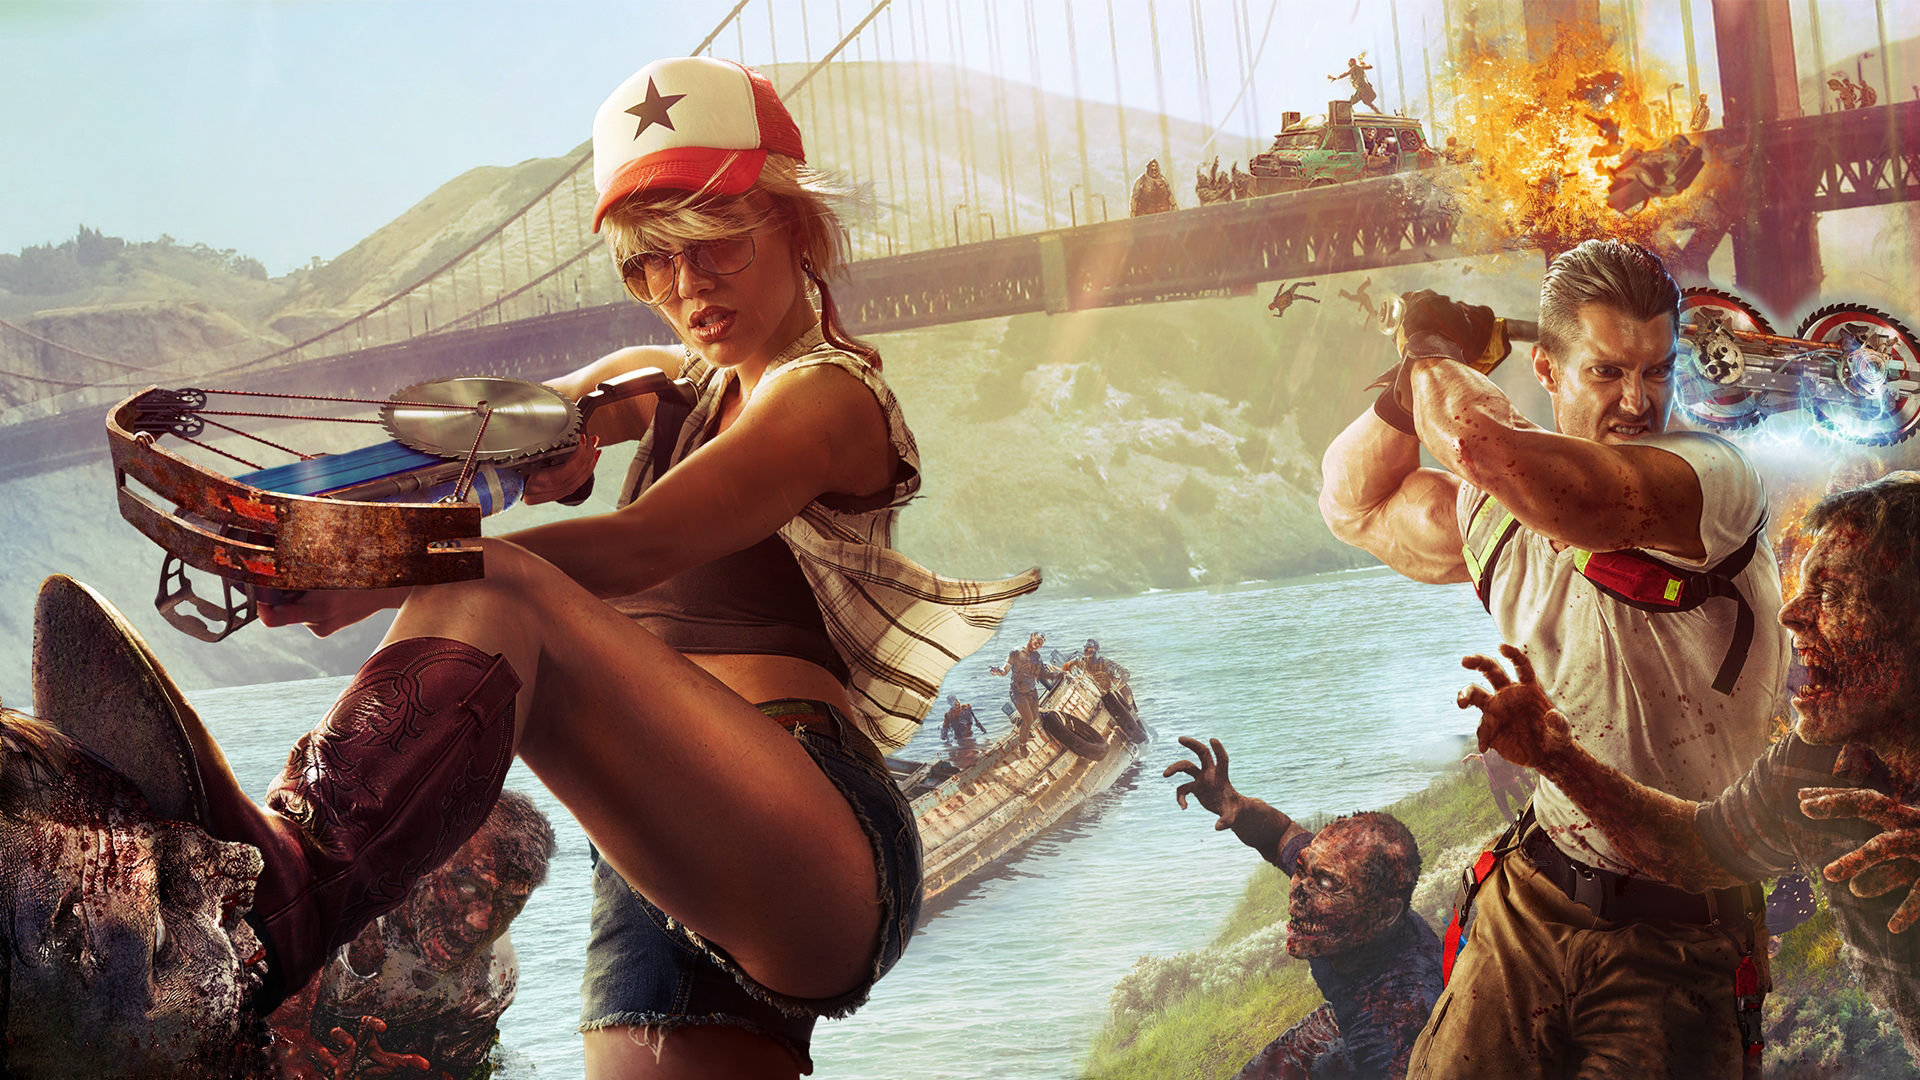 dead island 2 amazing hd wallpapers high quality   all hd